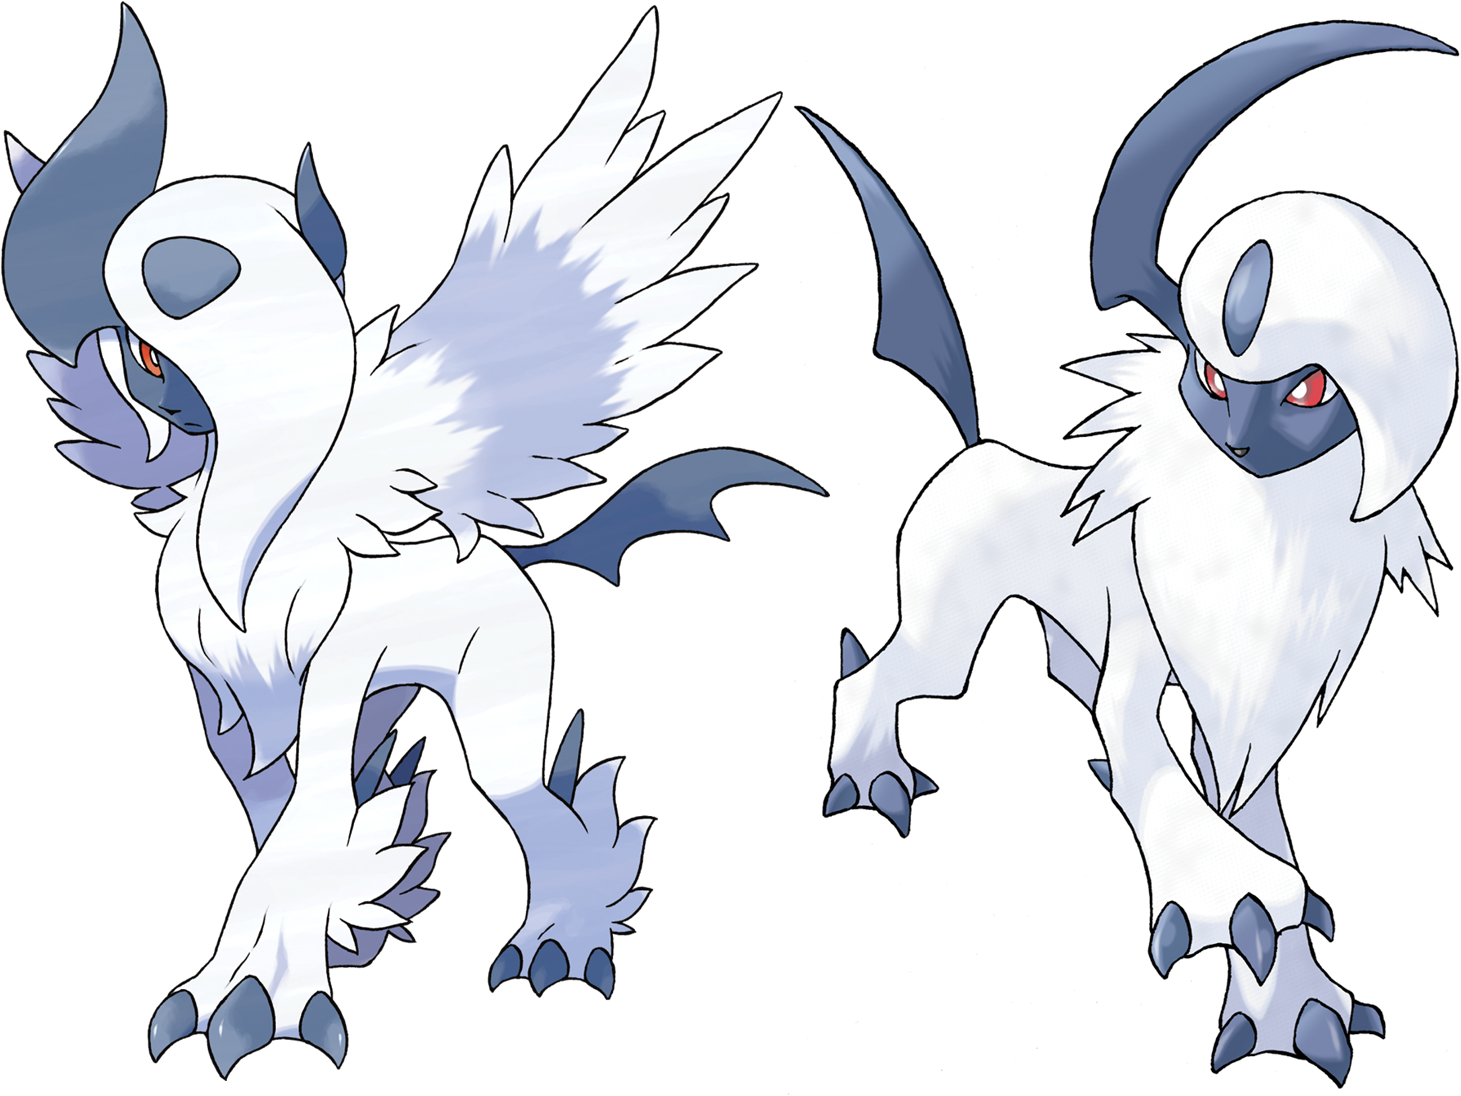 Absol and mega absol by frie ice on deviantart - Absol evolution ...